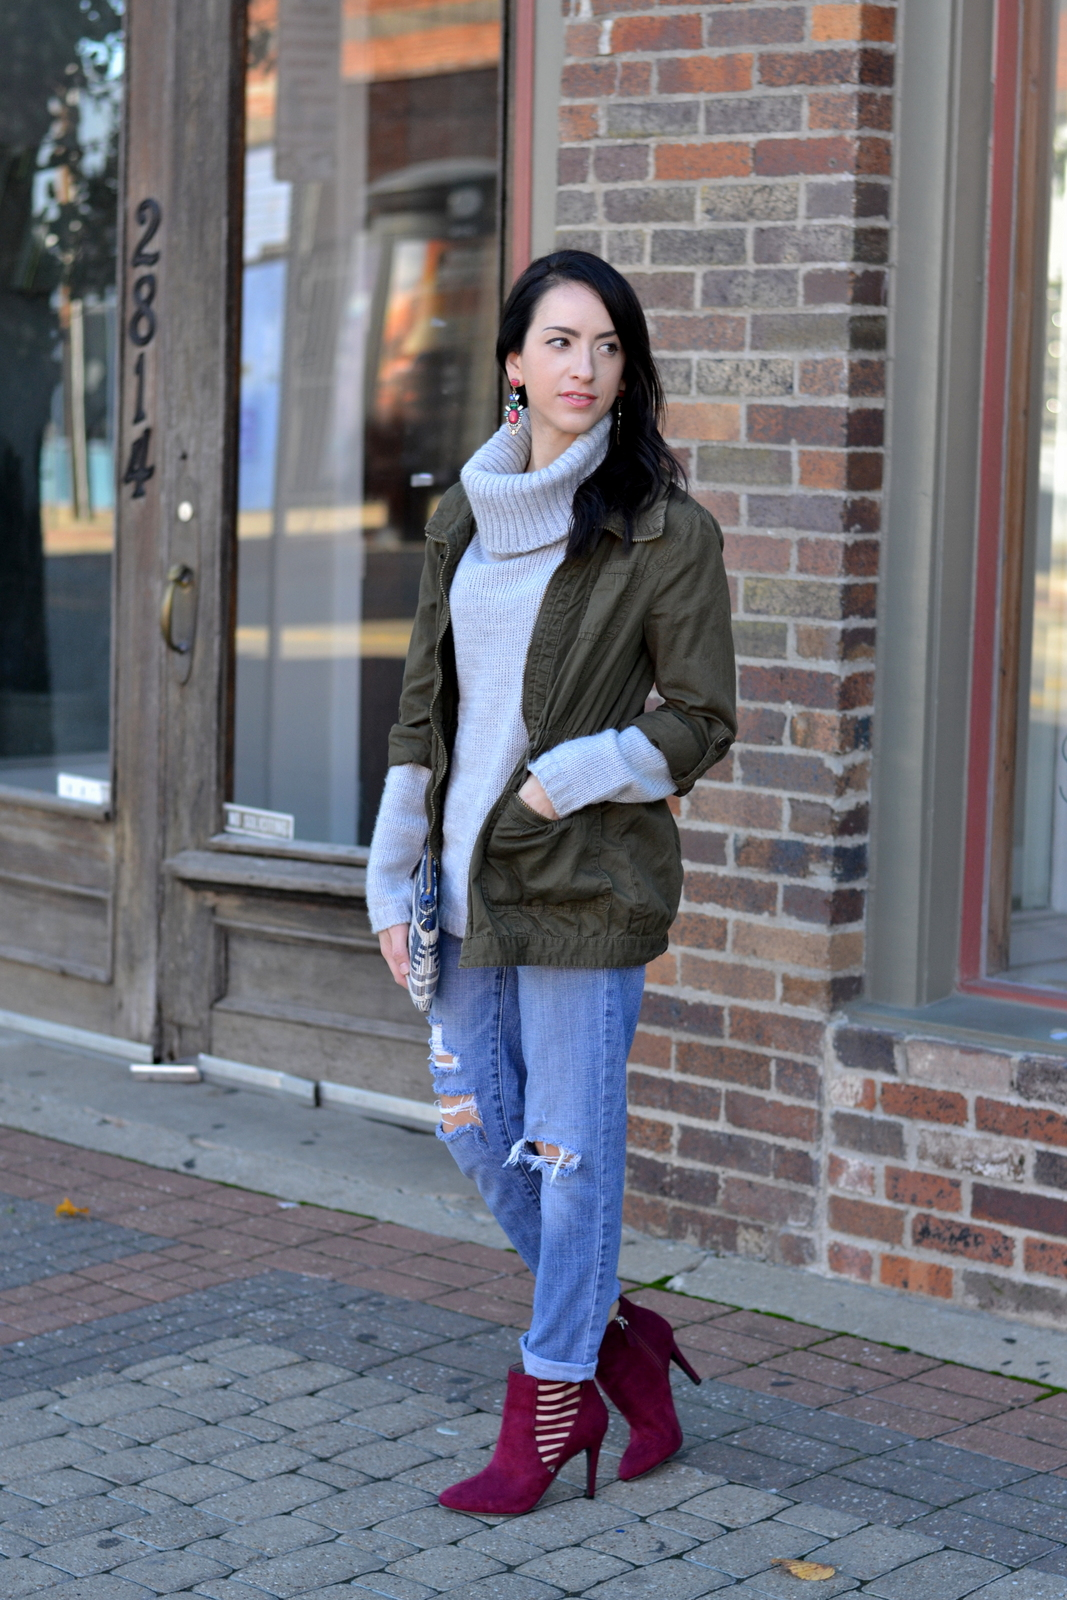 Fall Sweater_Boyfriend Jeans_Booties